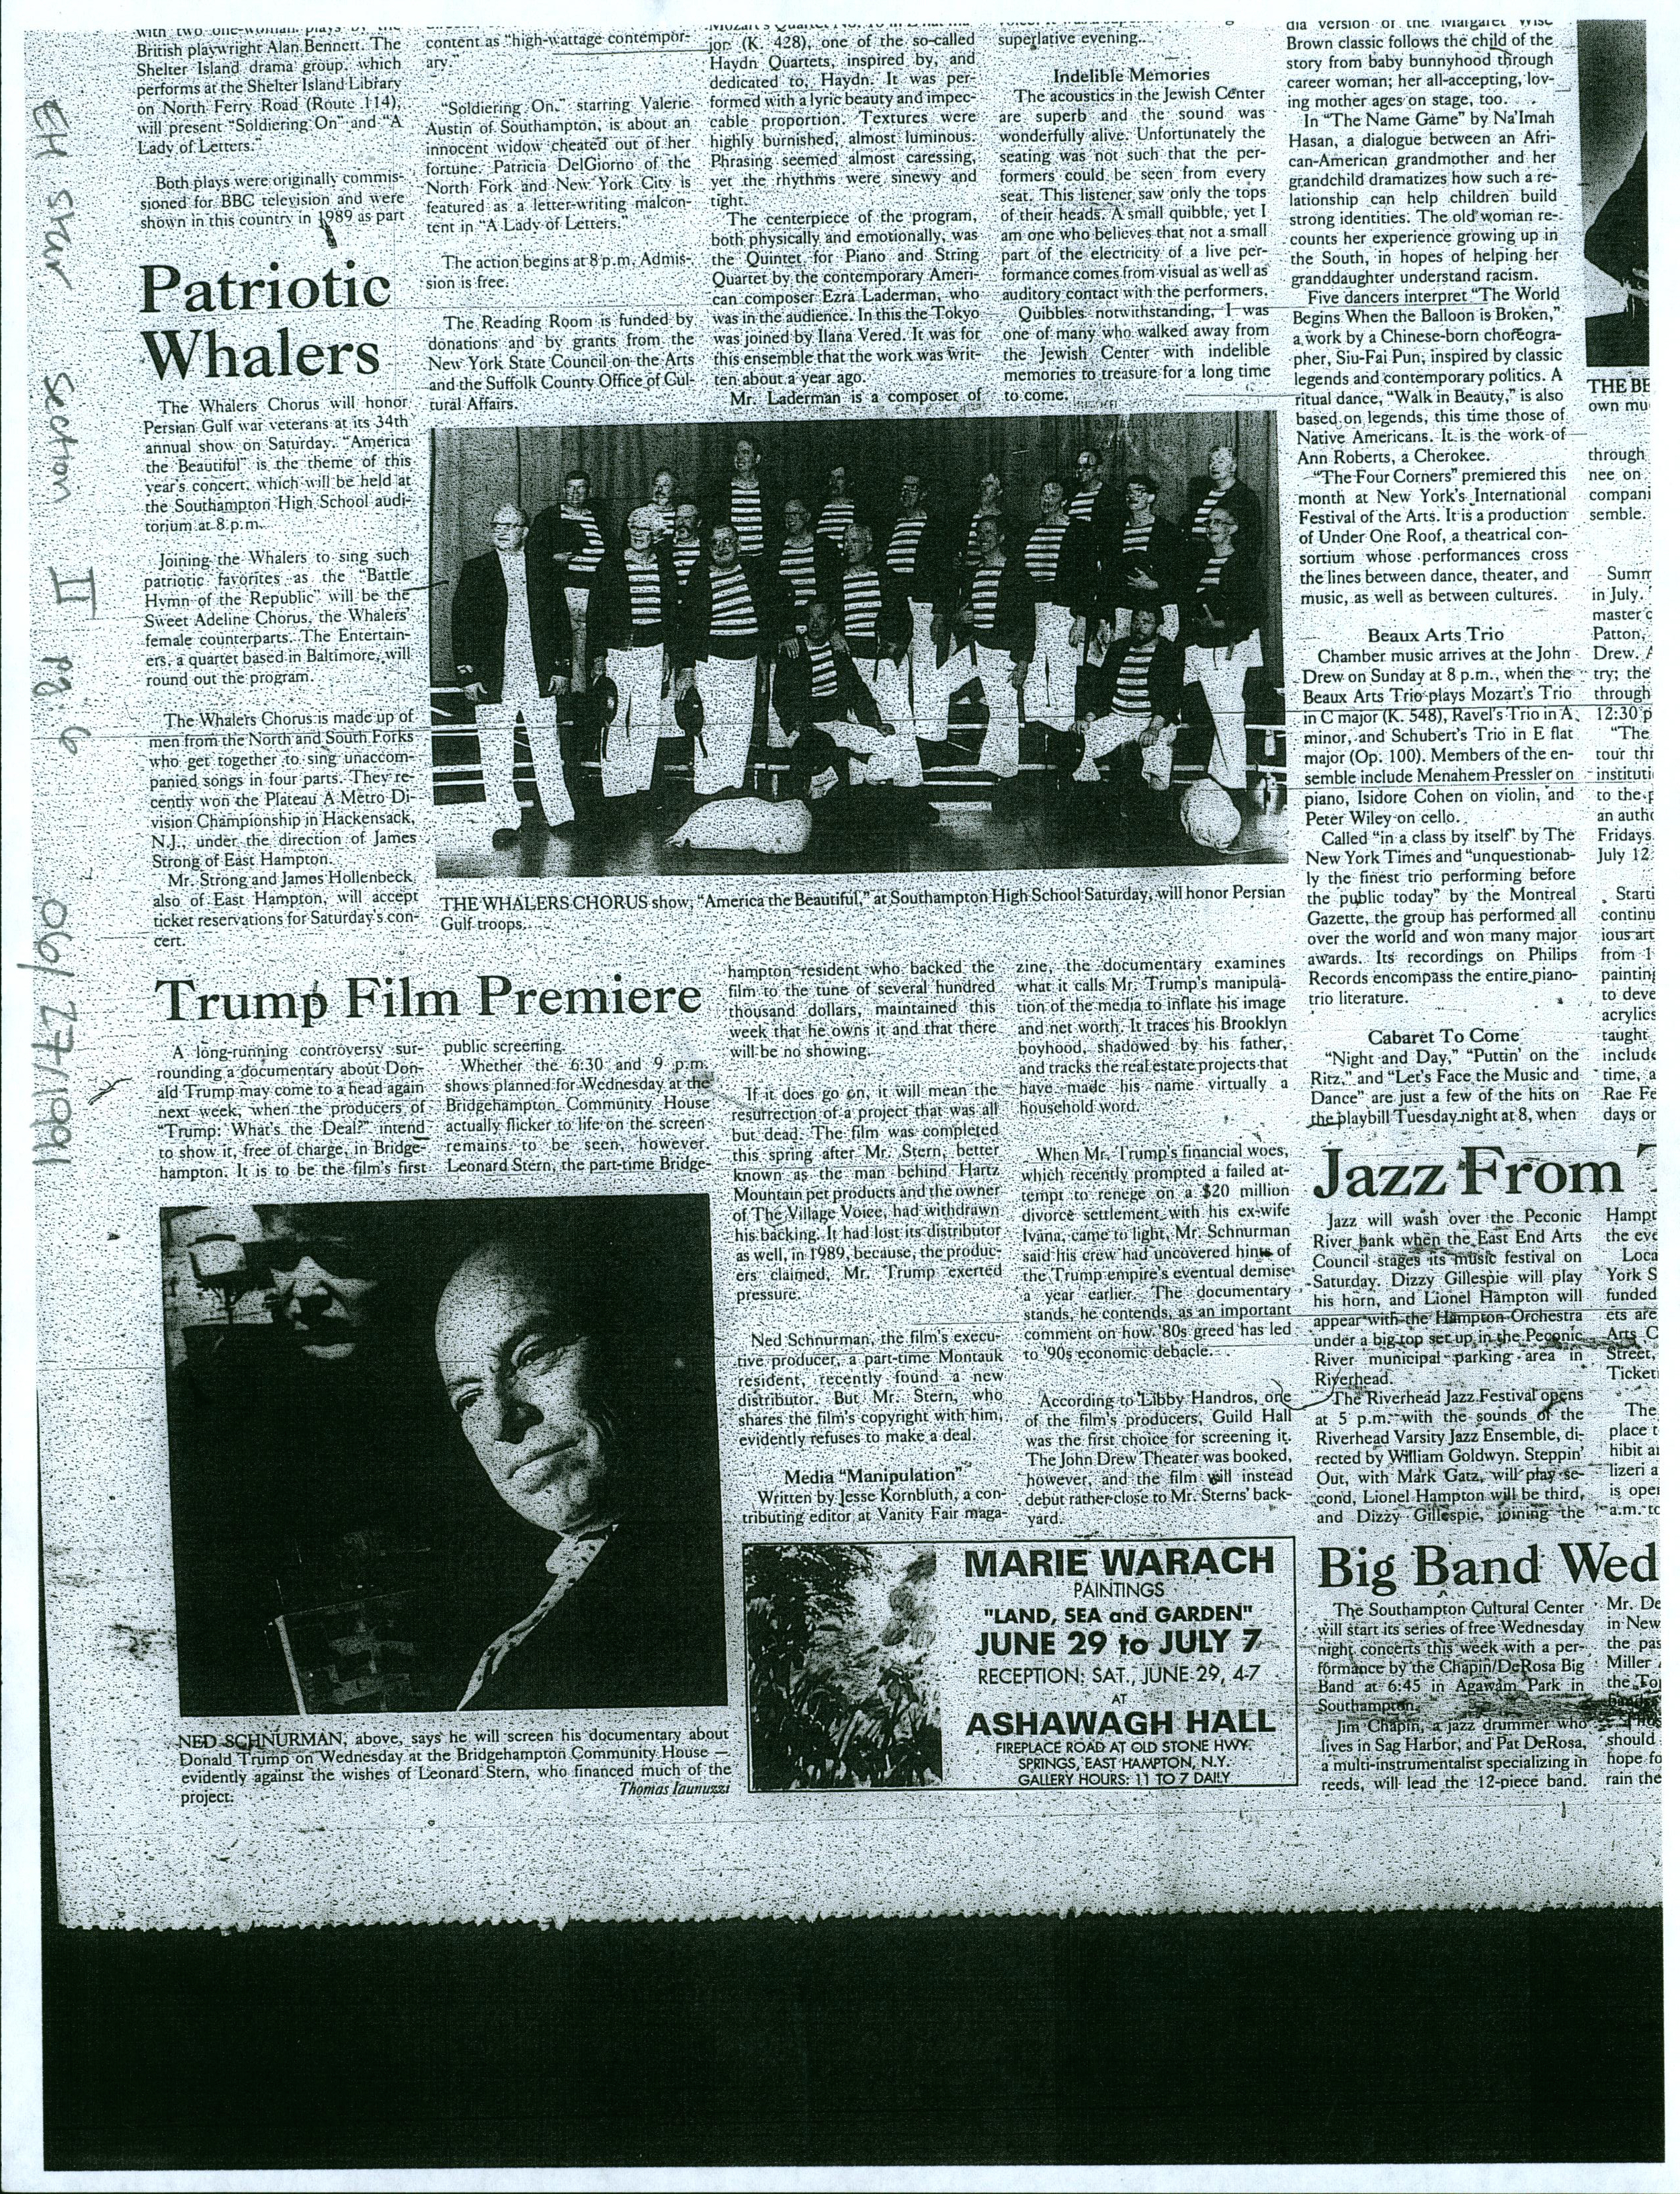 E.H. Star, July 11, 1991_Tump Film Review-1 copy.jpg